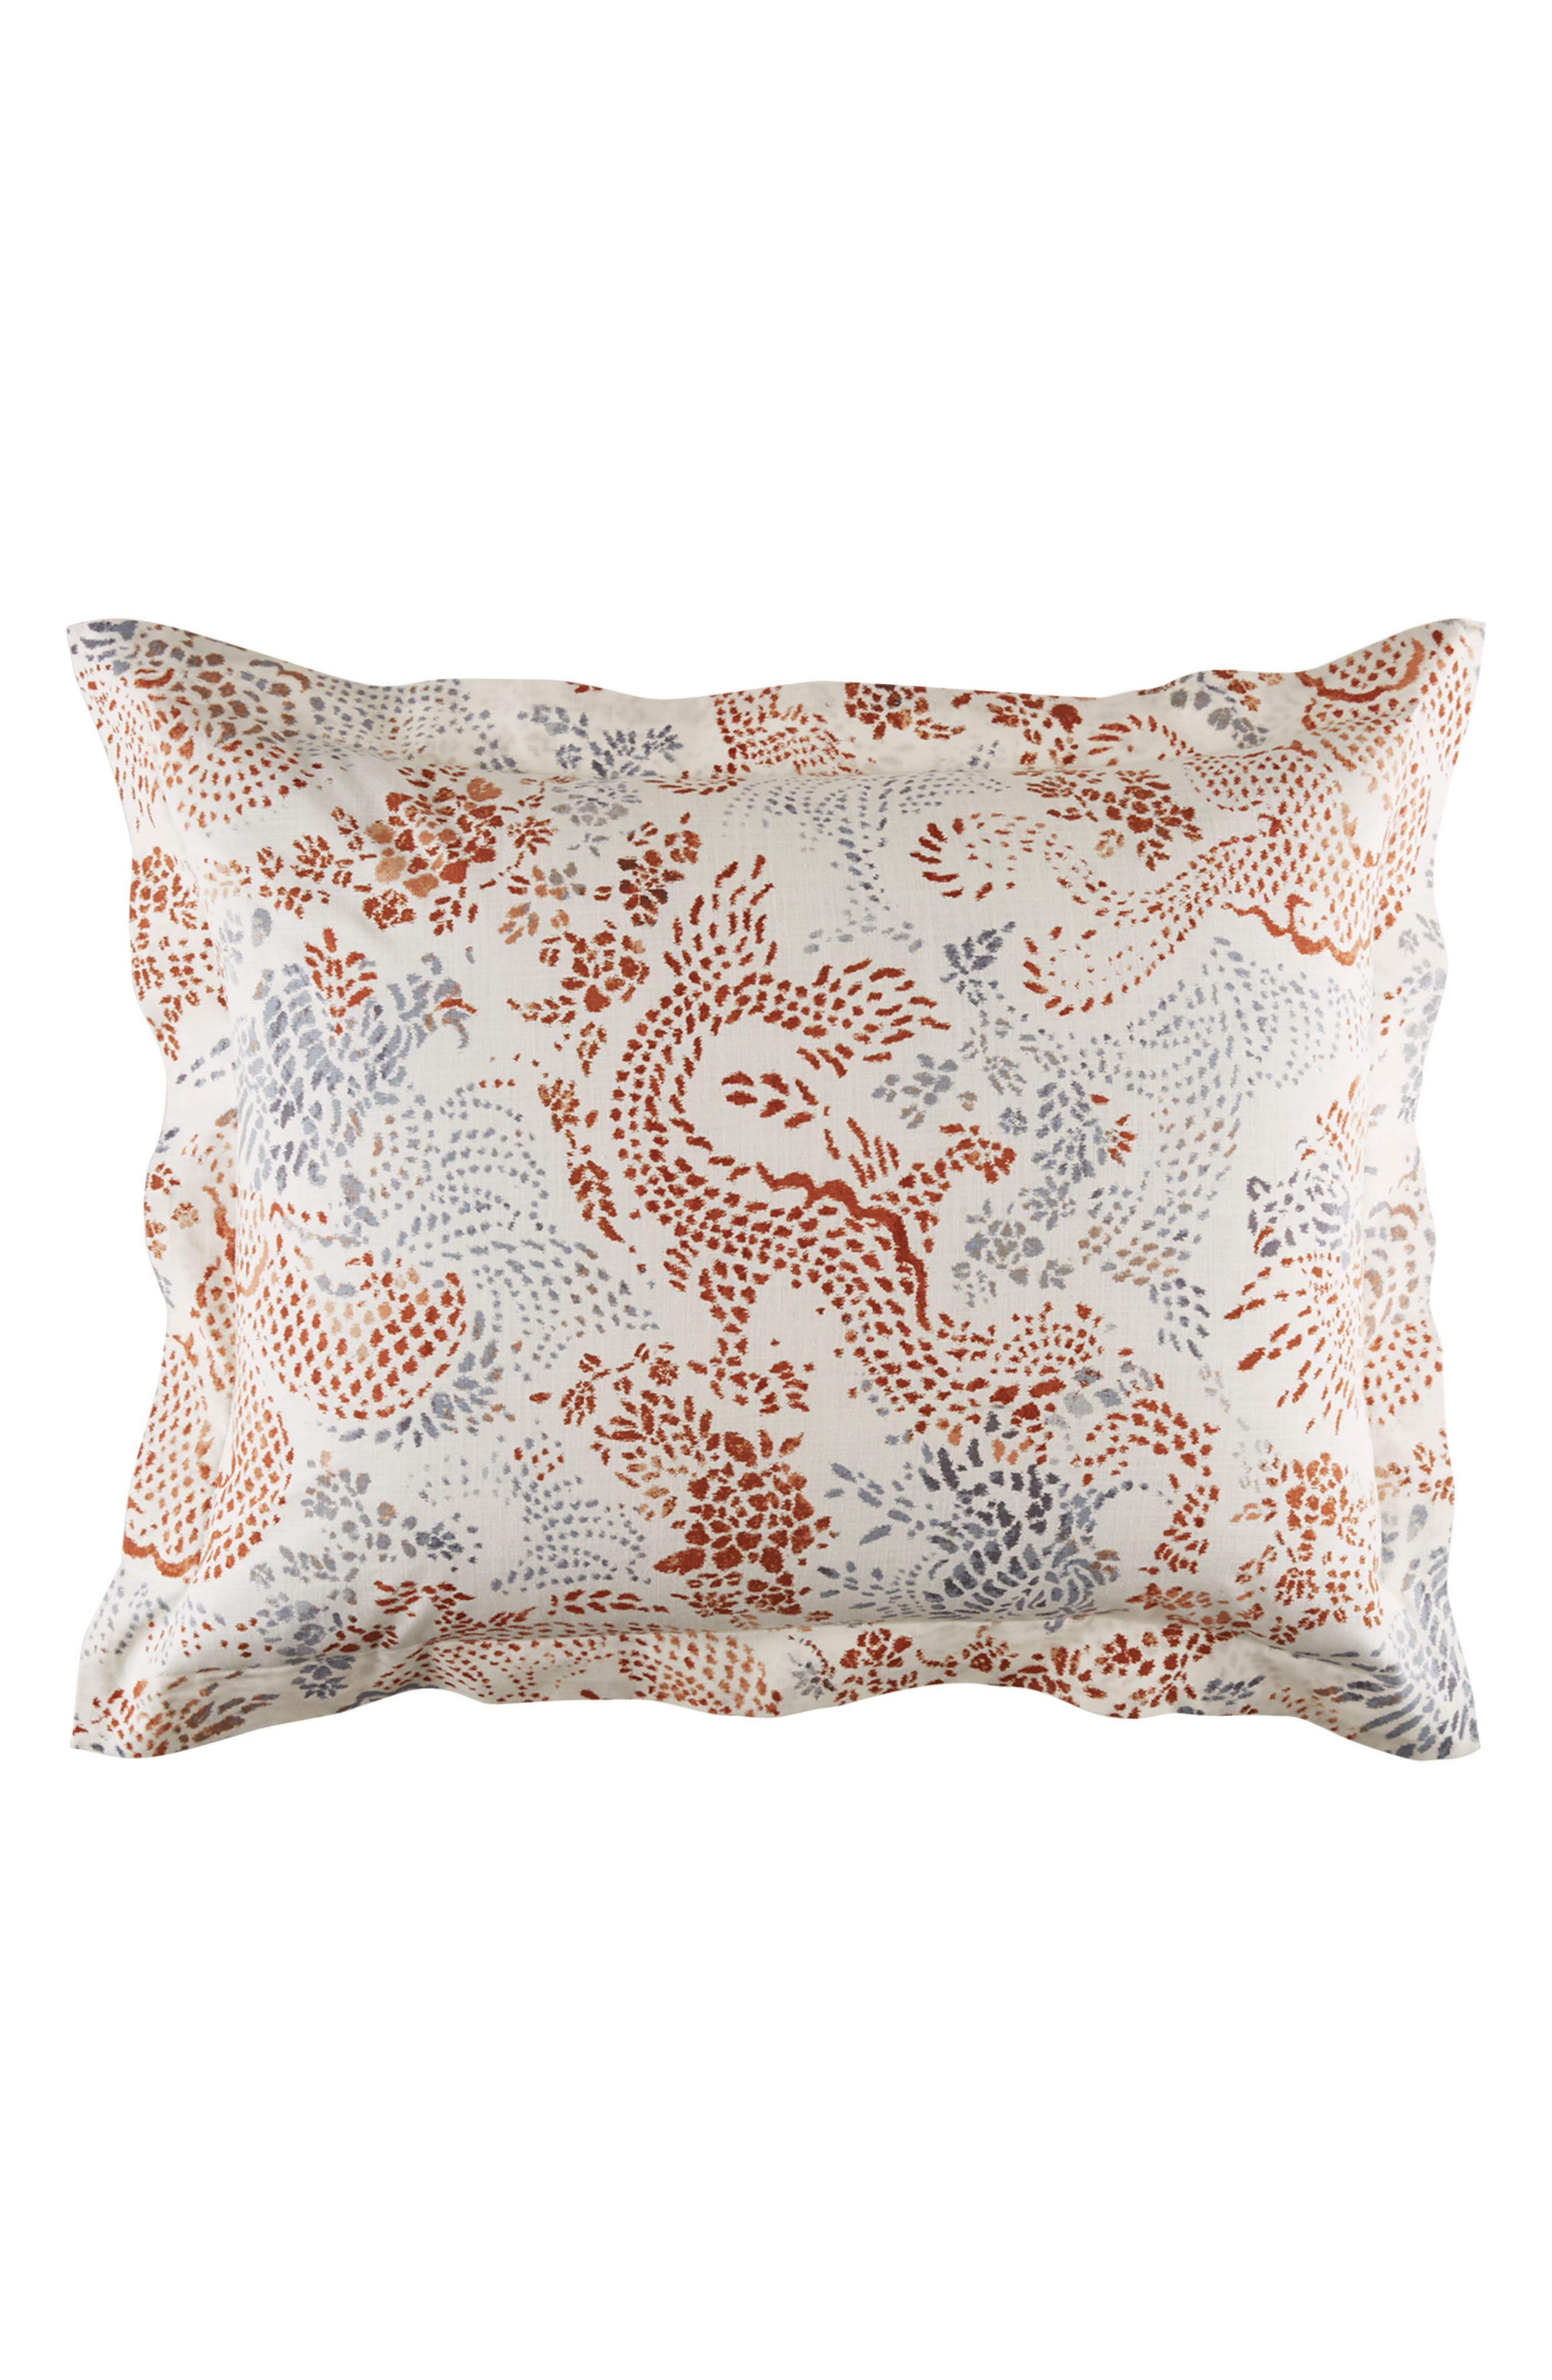 Main Image - DwellStudio Jakarta Set of 2 Shams